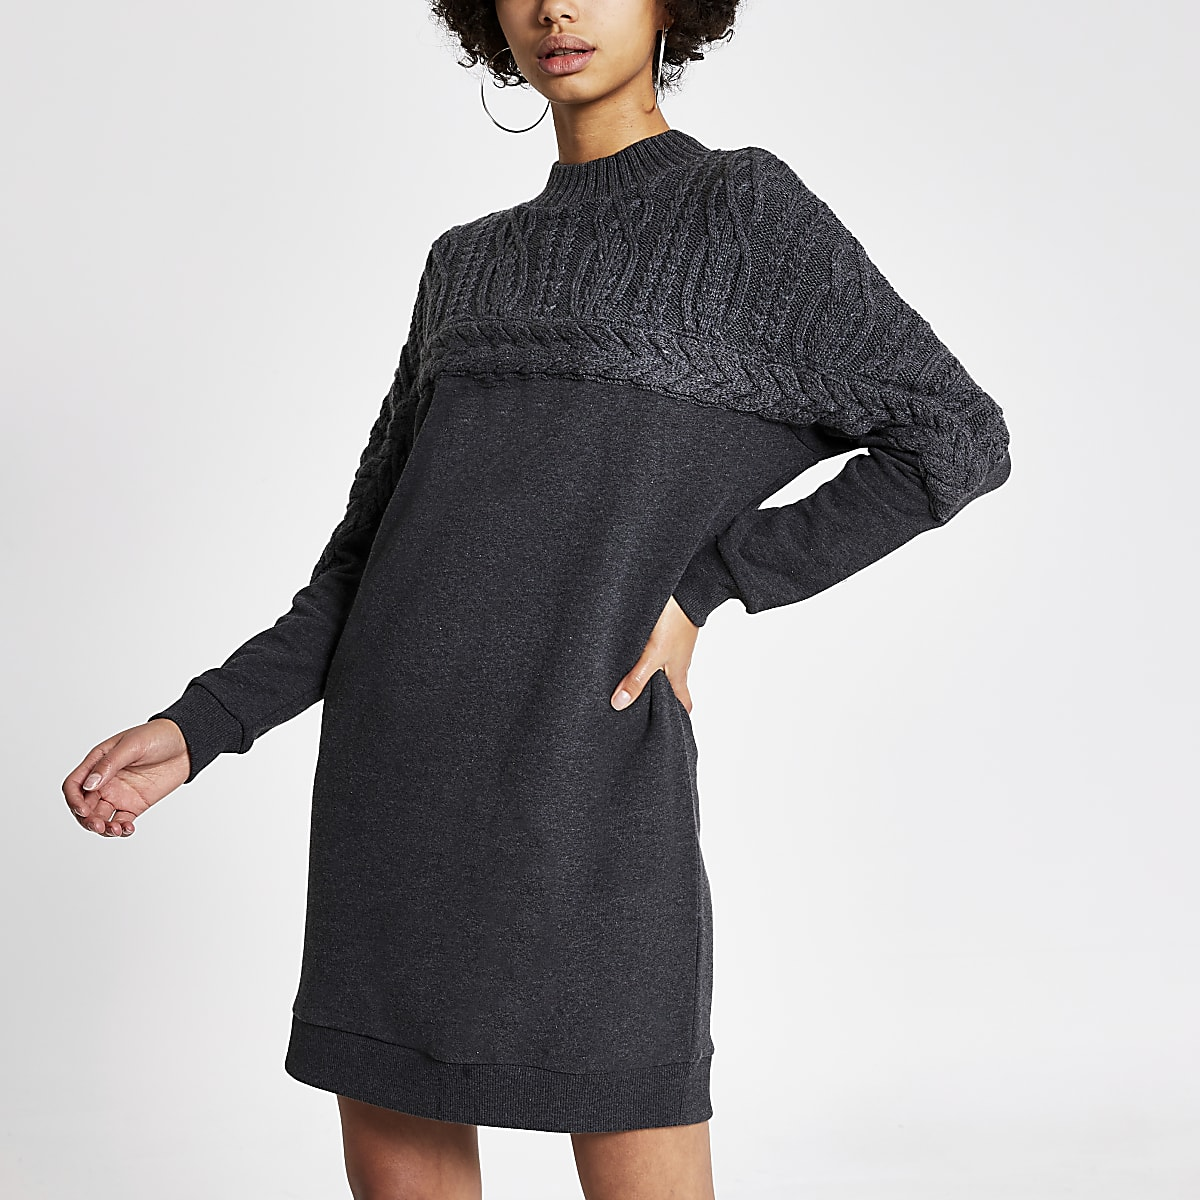 Grey cable knitted sweatshirt dress